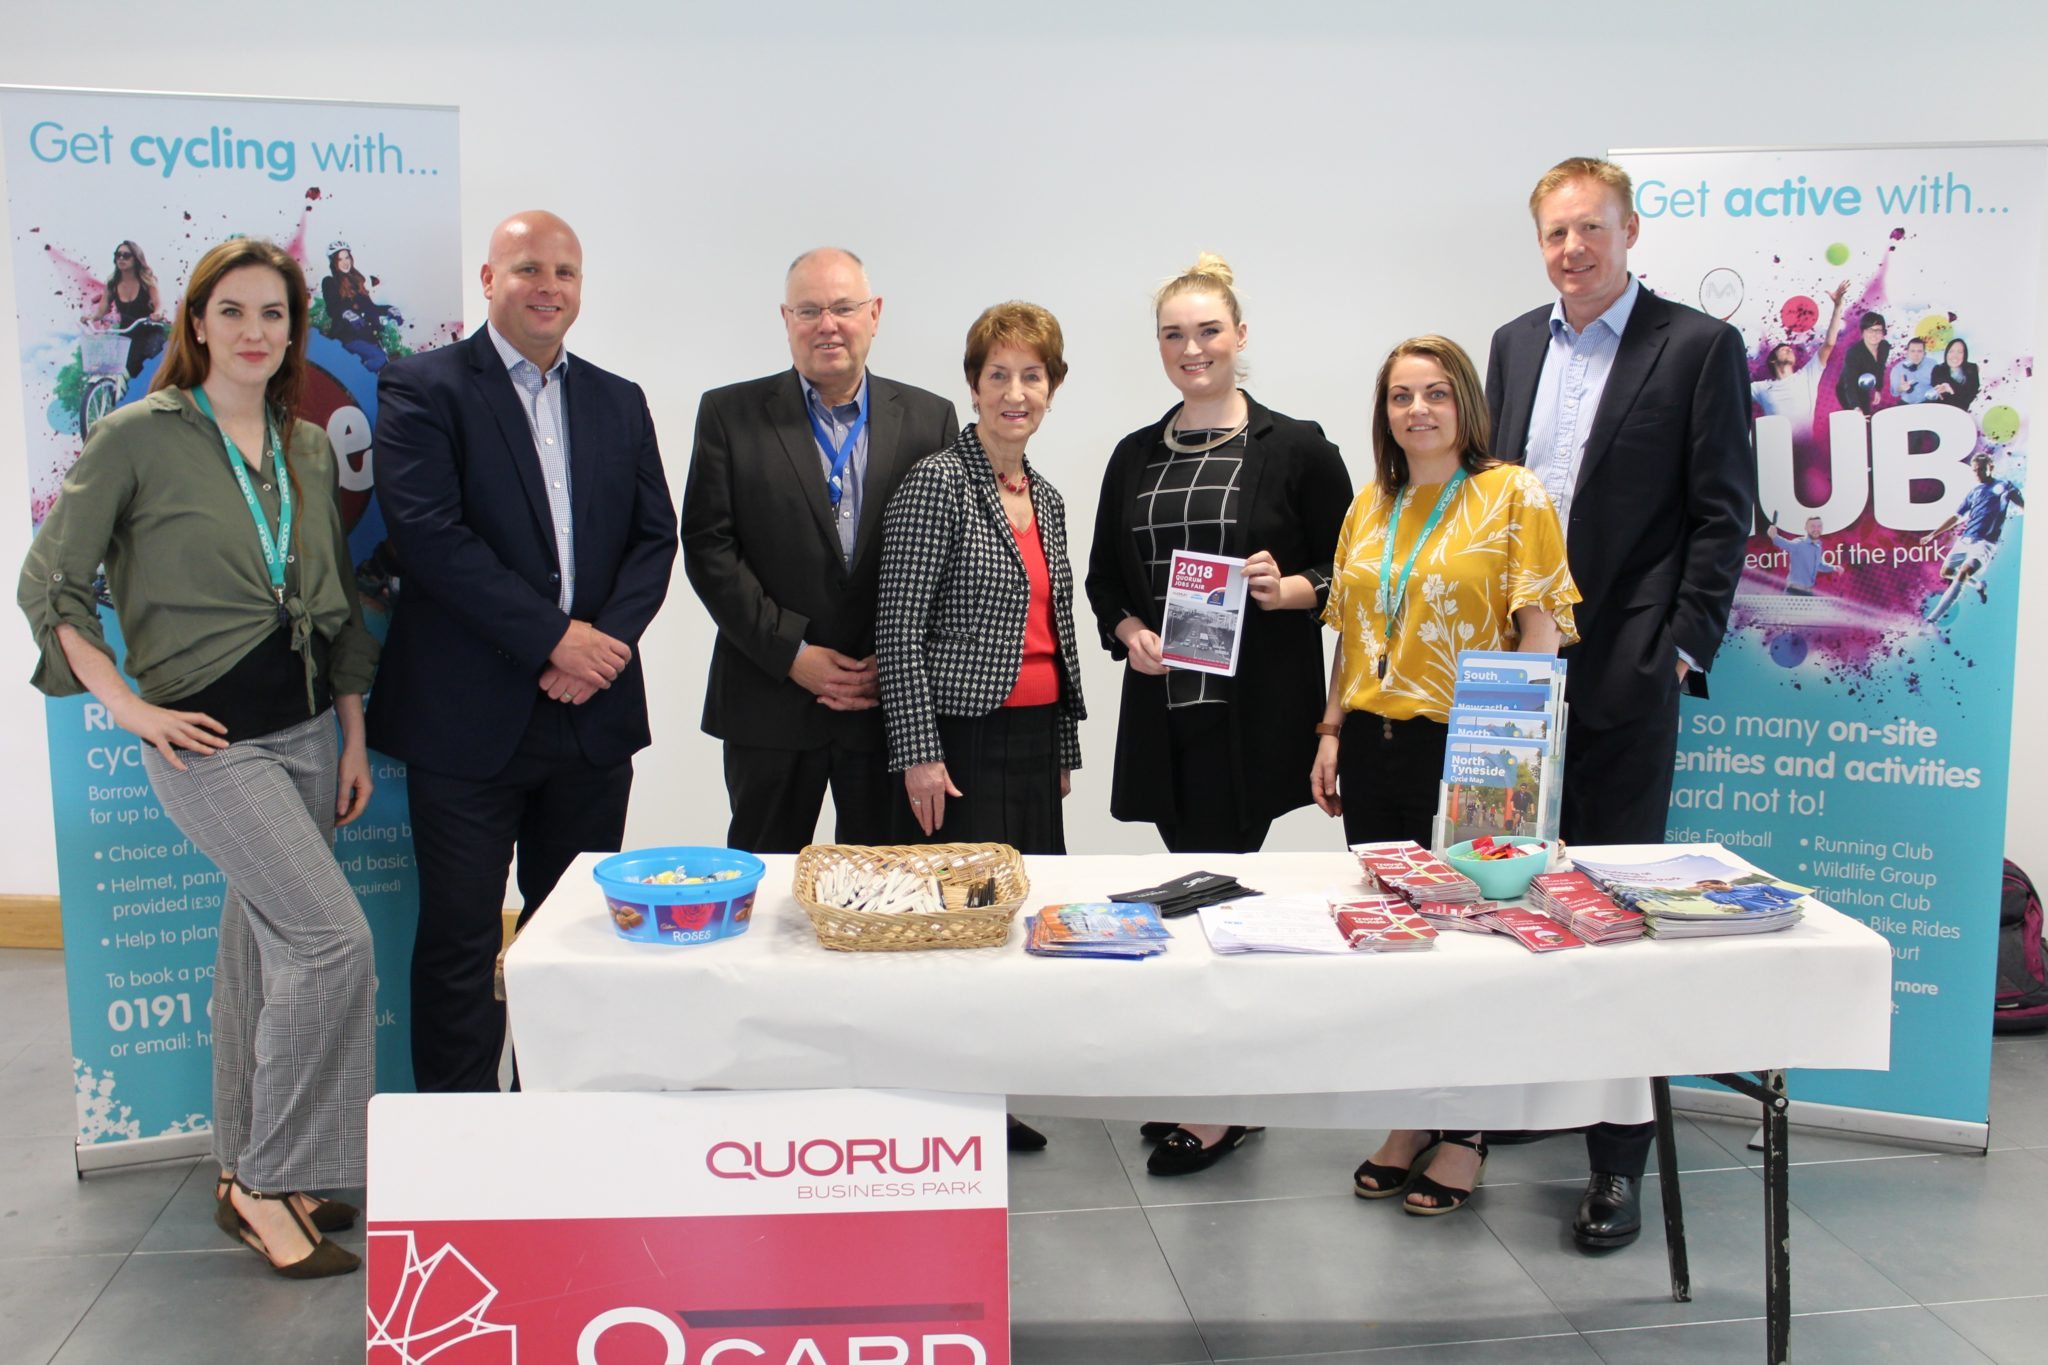 The Hub Team, Engie's Dave Hughes, Craig Reid from North Tyneside Council and Mayor Norma Redfern at Quorum Jobs Fair.